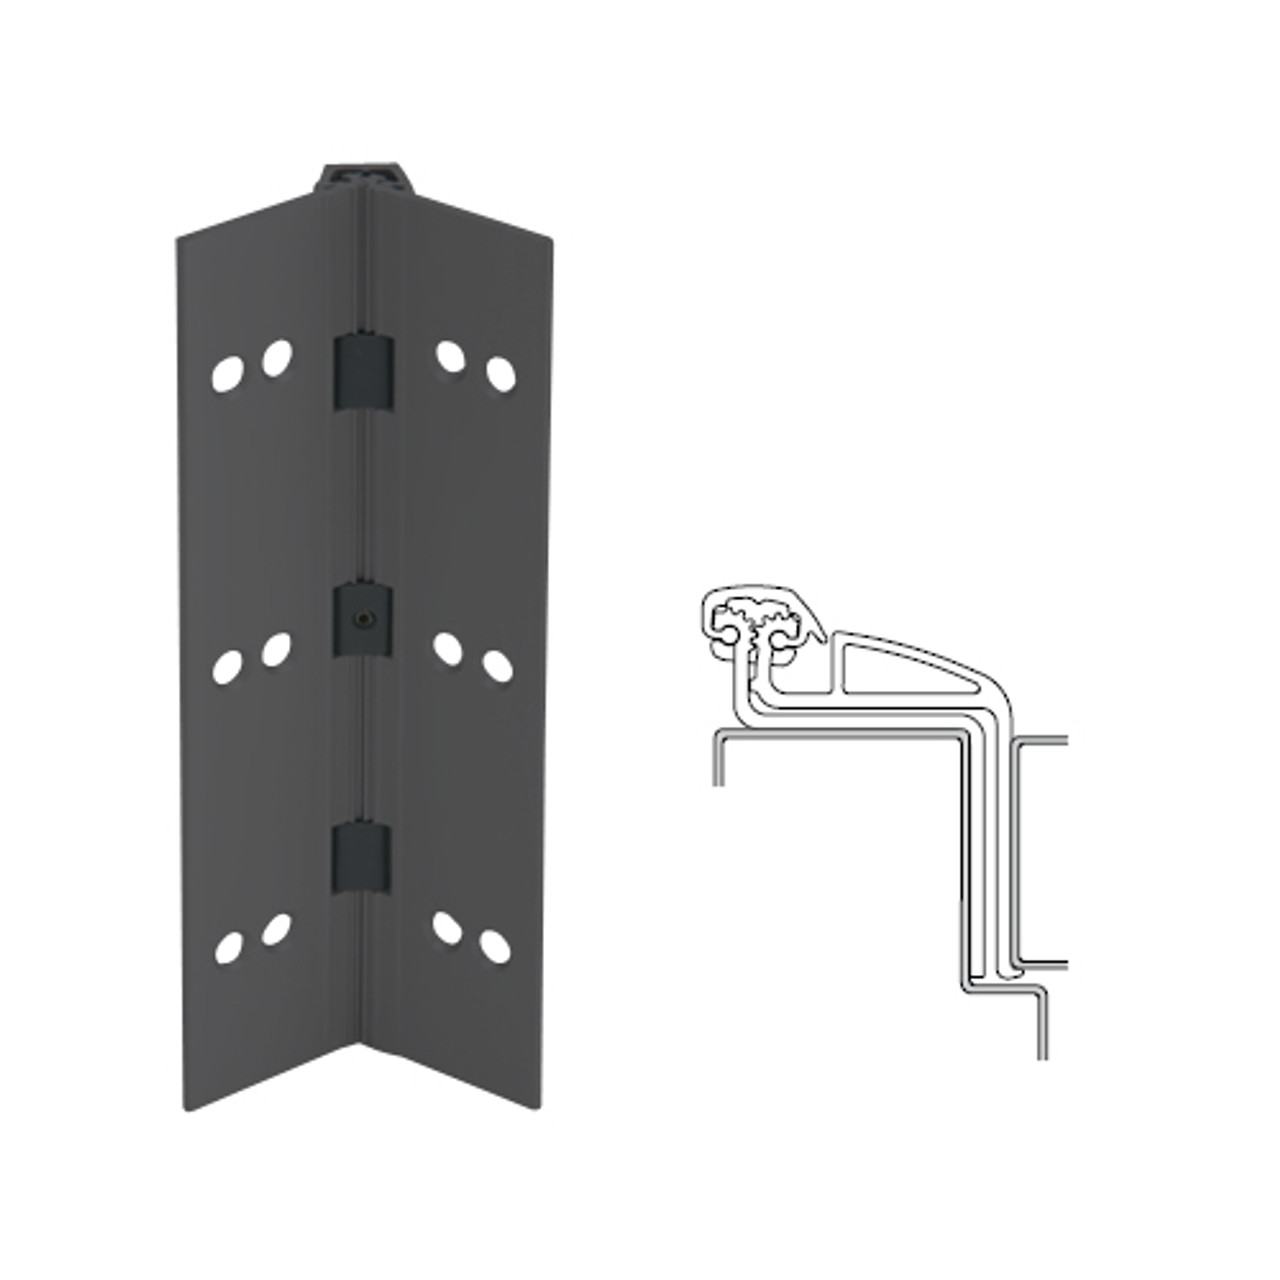 041XY-315AN-120-TFWD IVES Full Mortise Continuous Geared Hinges with Thread Forming Screws in Anodized Black